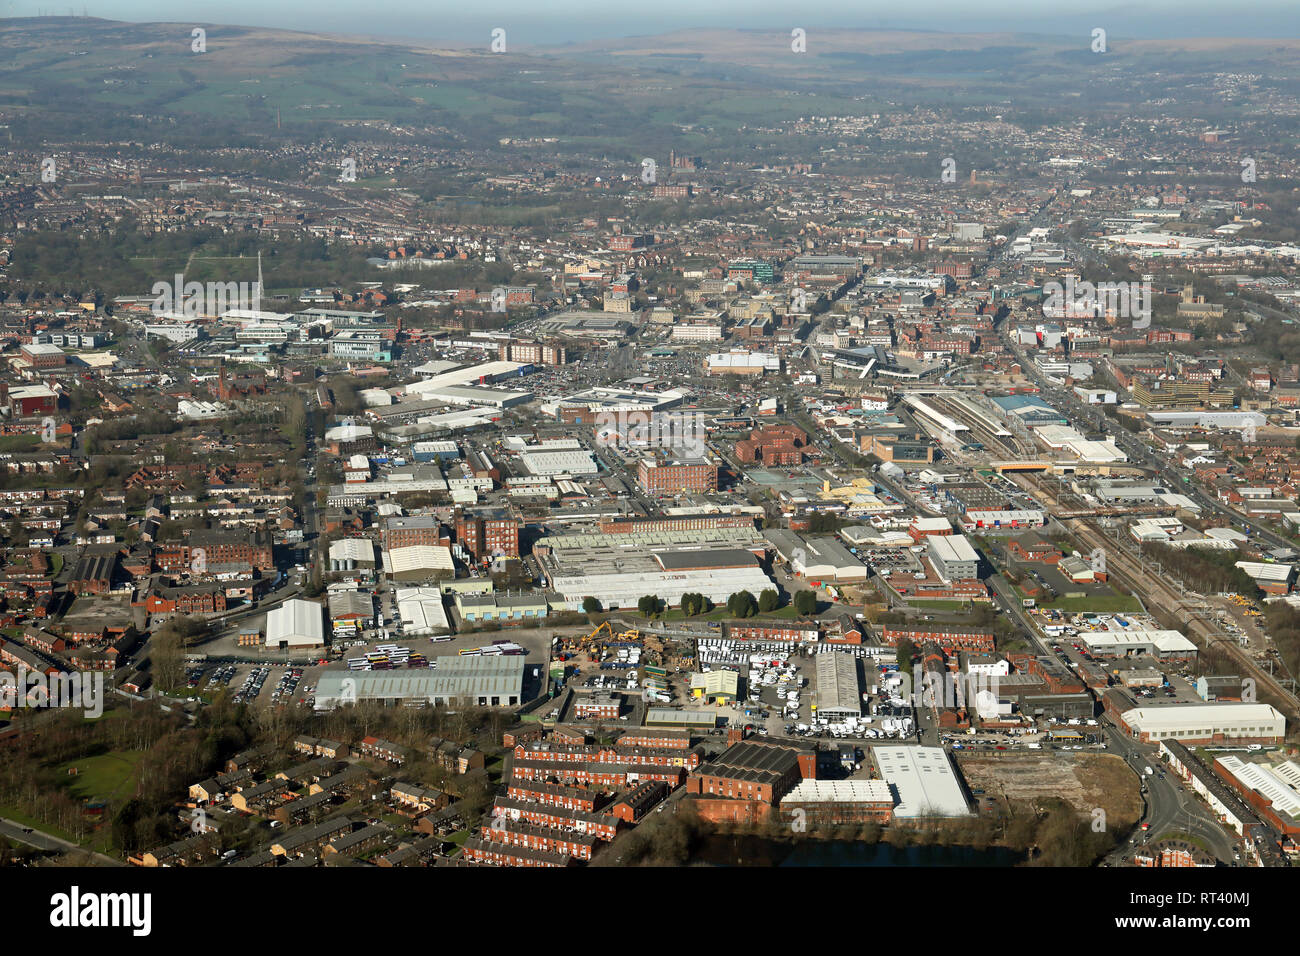 aerial view of the Bolton town skyline, Lancashire - Stock Image